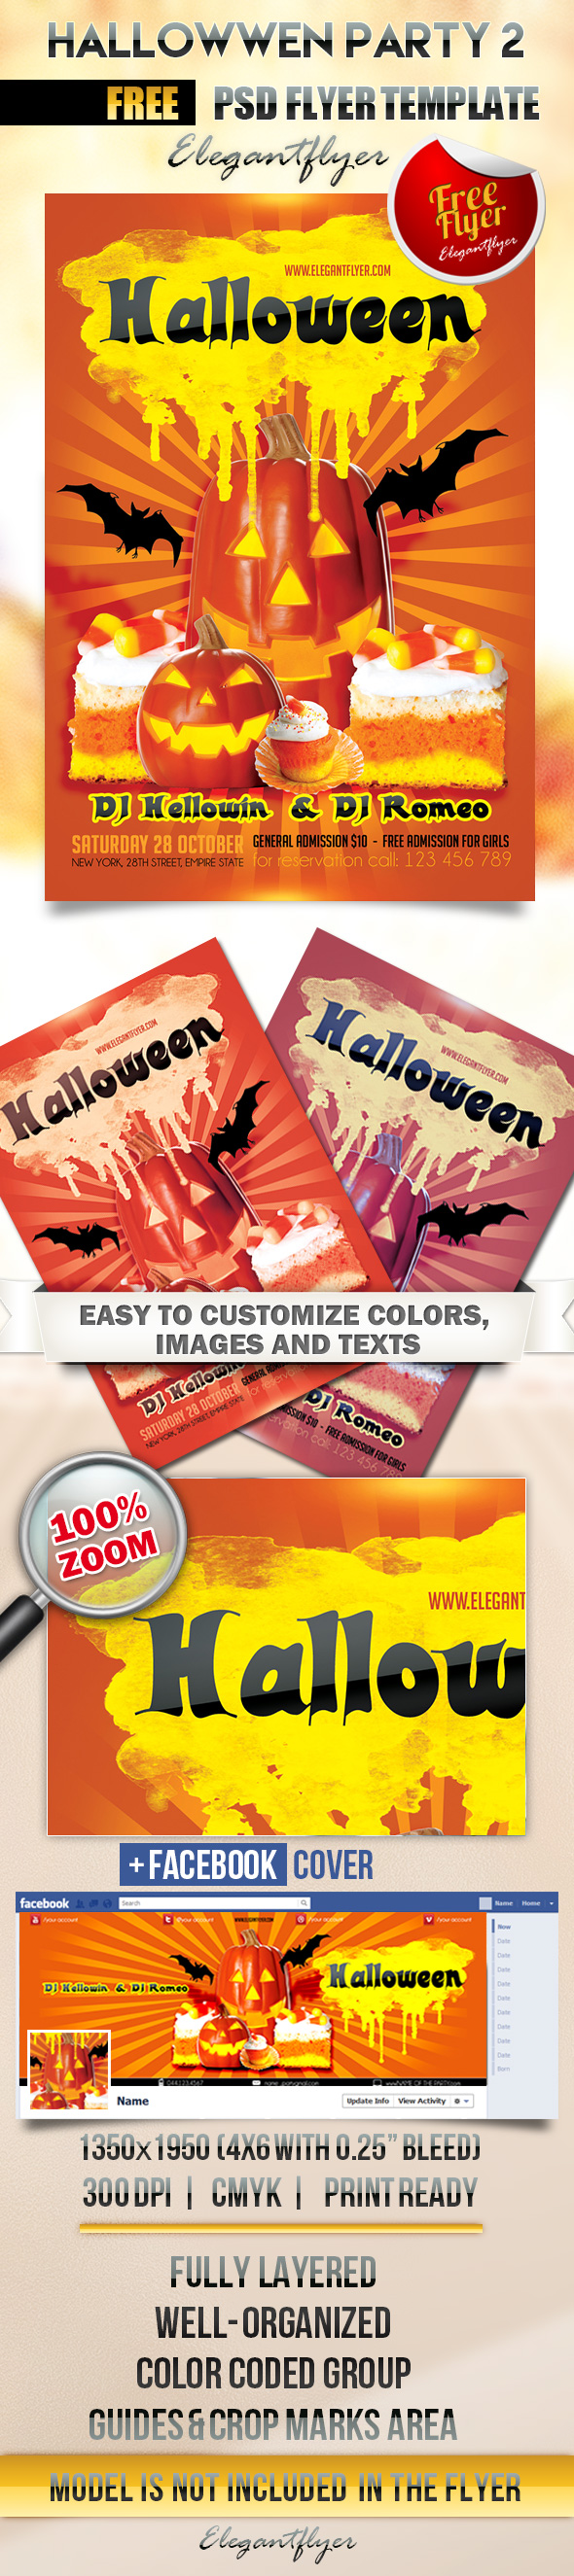 bigpreview_hallowwen_party_free flyer psd template facebook cover